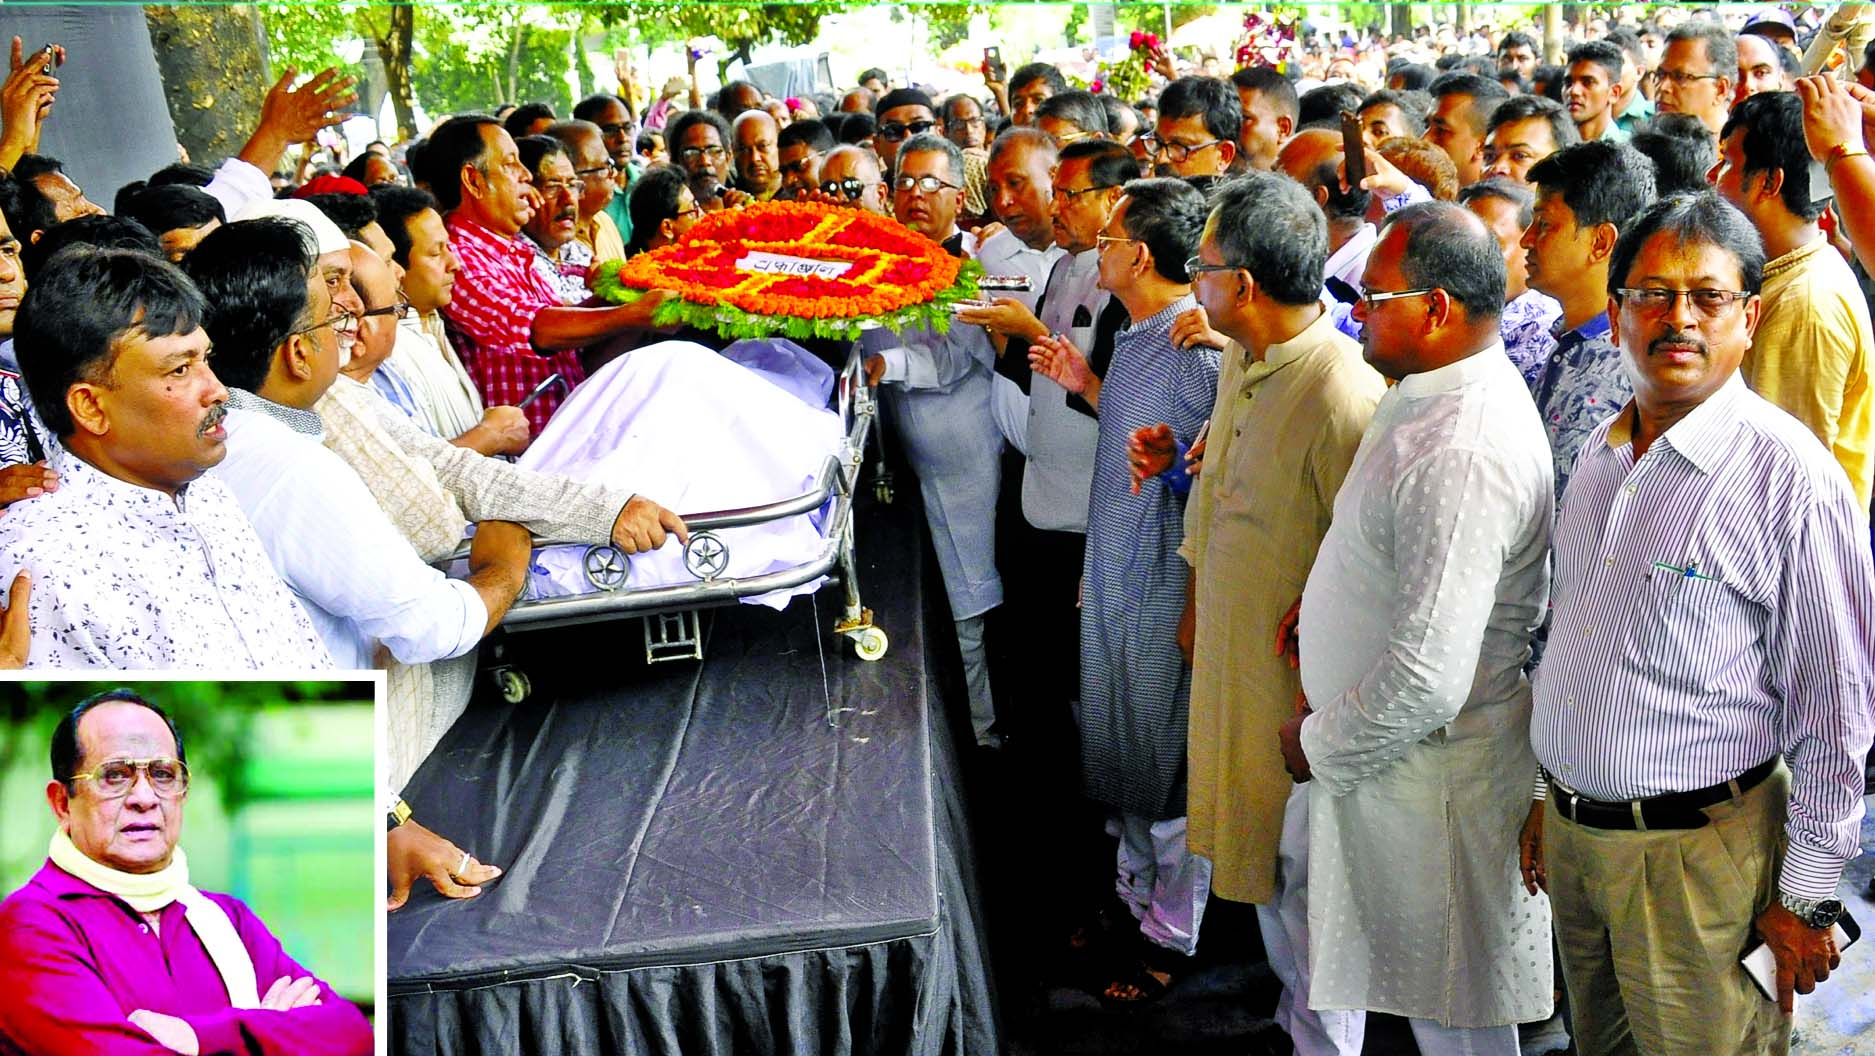 People of all walks of life attended the Janaza of Nayak Raj Razzak at the Central Shaheed Minar on Thursday.